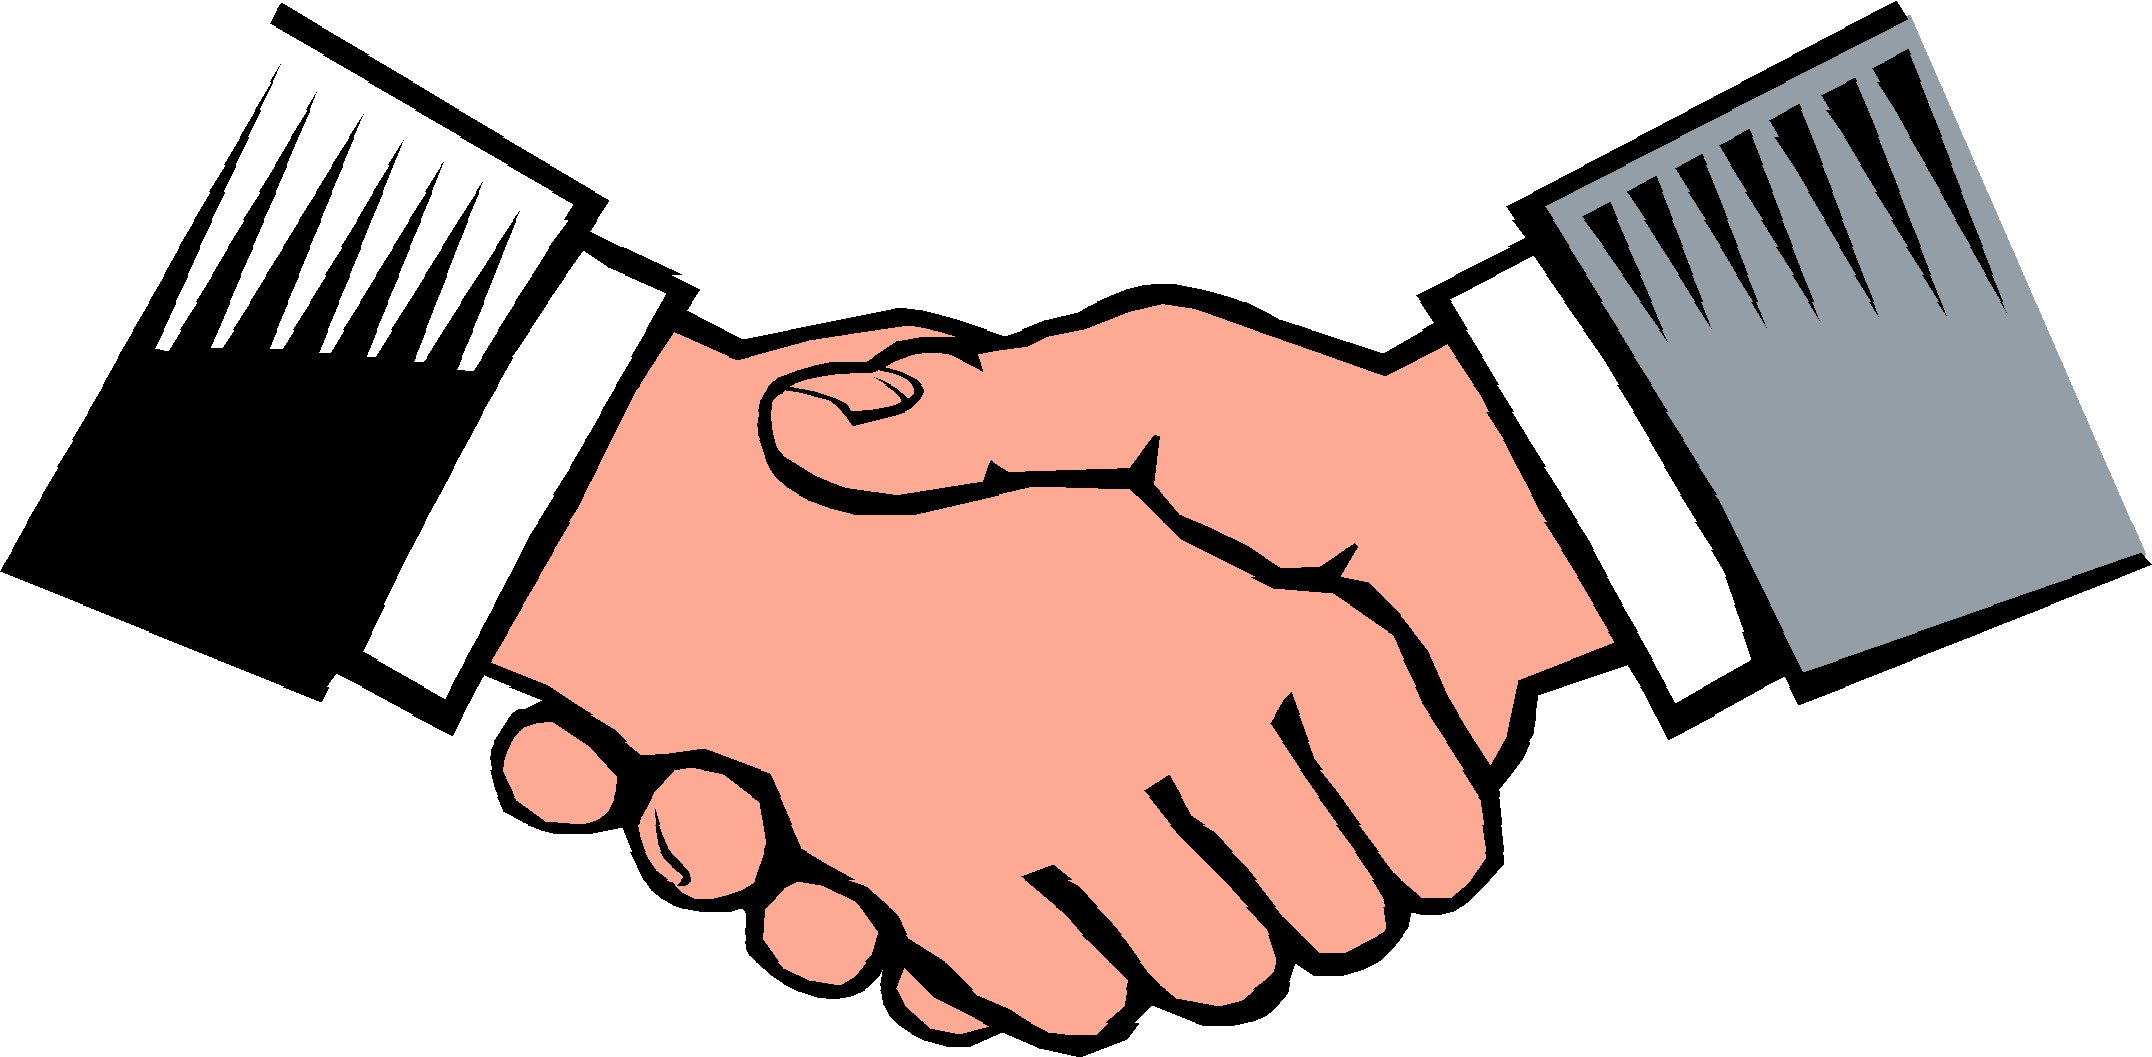 Handshake shaking hands hand shake clip art related cliparts safari